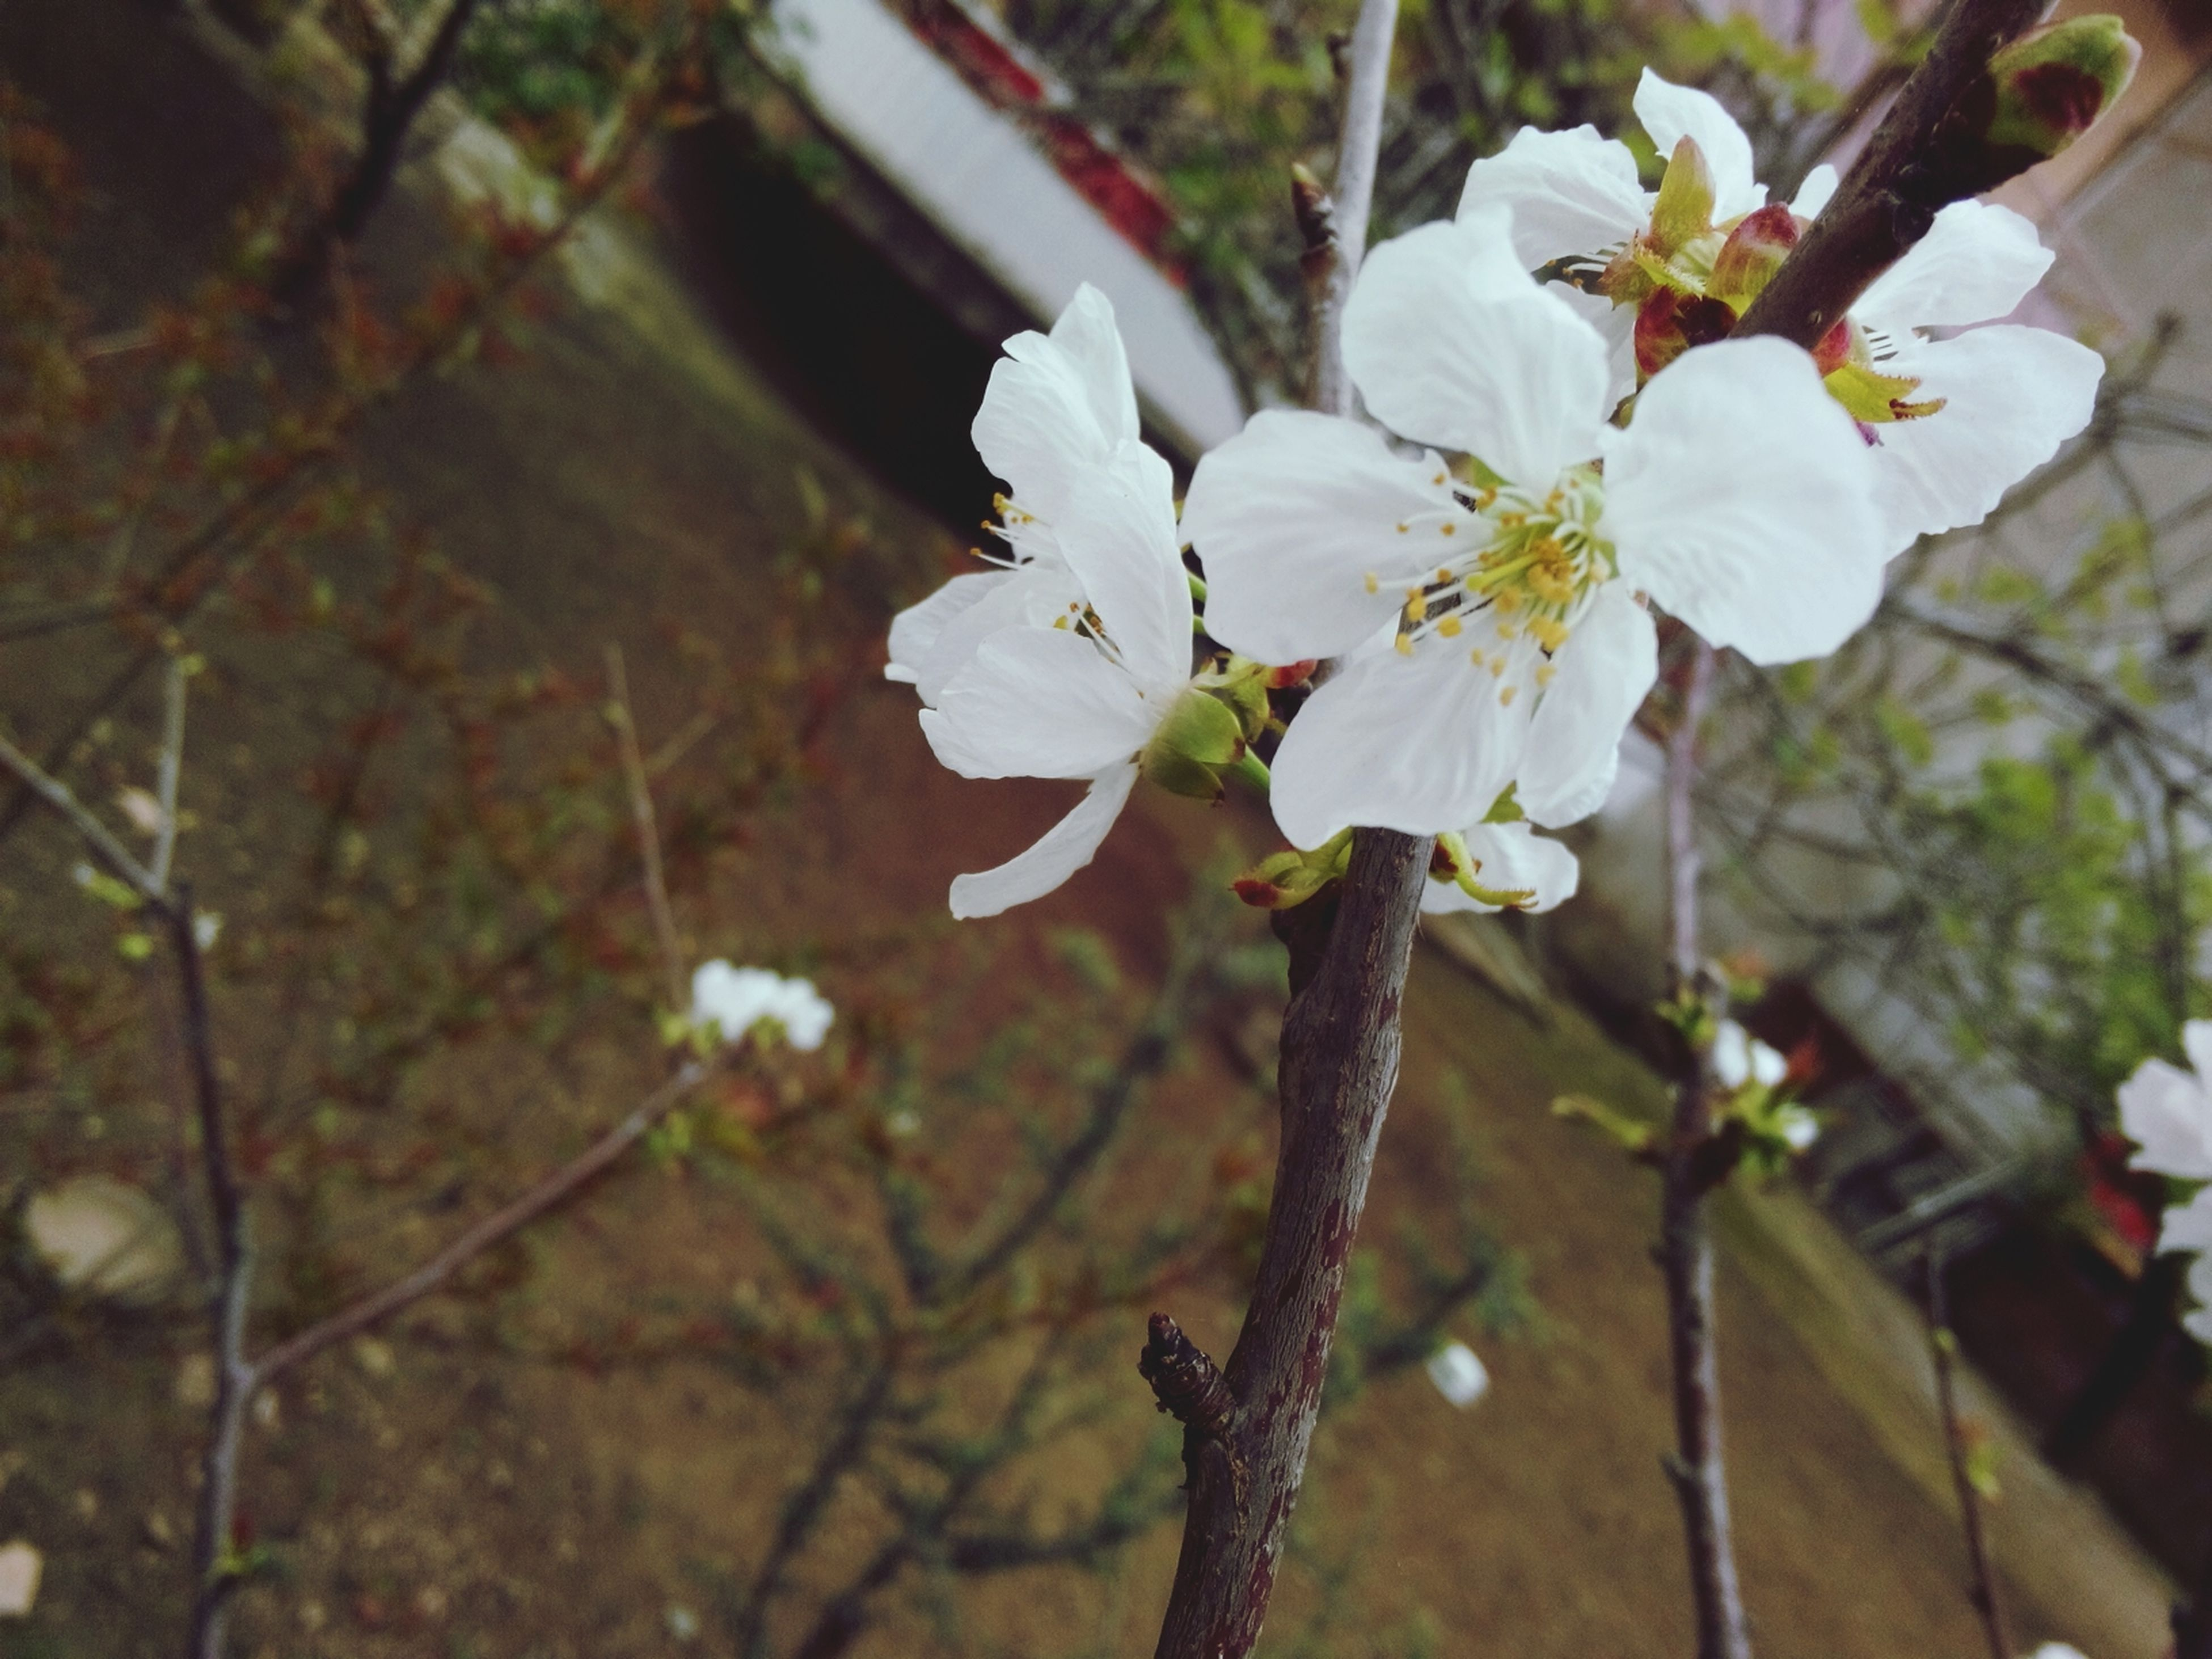 flower, freshness, fragility, petal, growth, focus on foreground, blooming, white color, flower head, tree, beauty in nature, nature, cherry blossom, in bloom, branch, blossom, close-up, day, springtime, outdoors